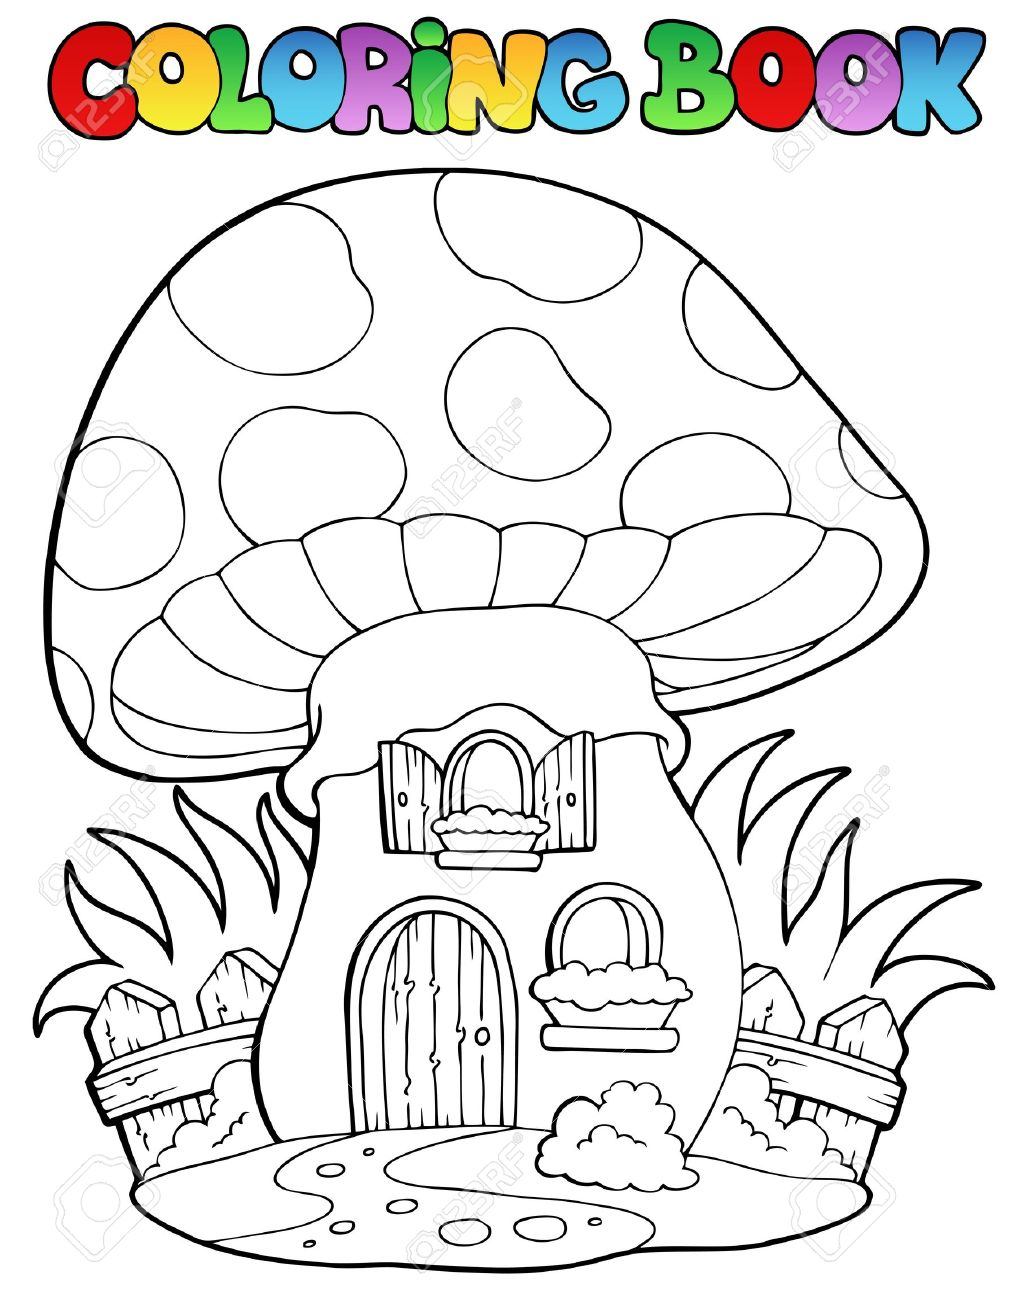 Coloring book mushroom house - vector illustration Stock Vector - 13356189